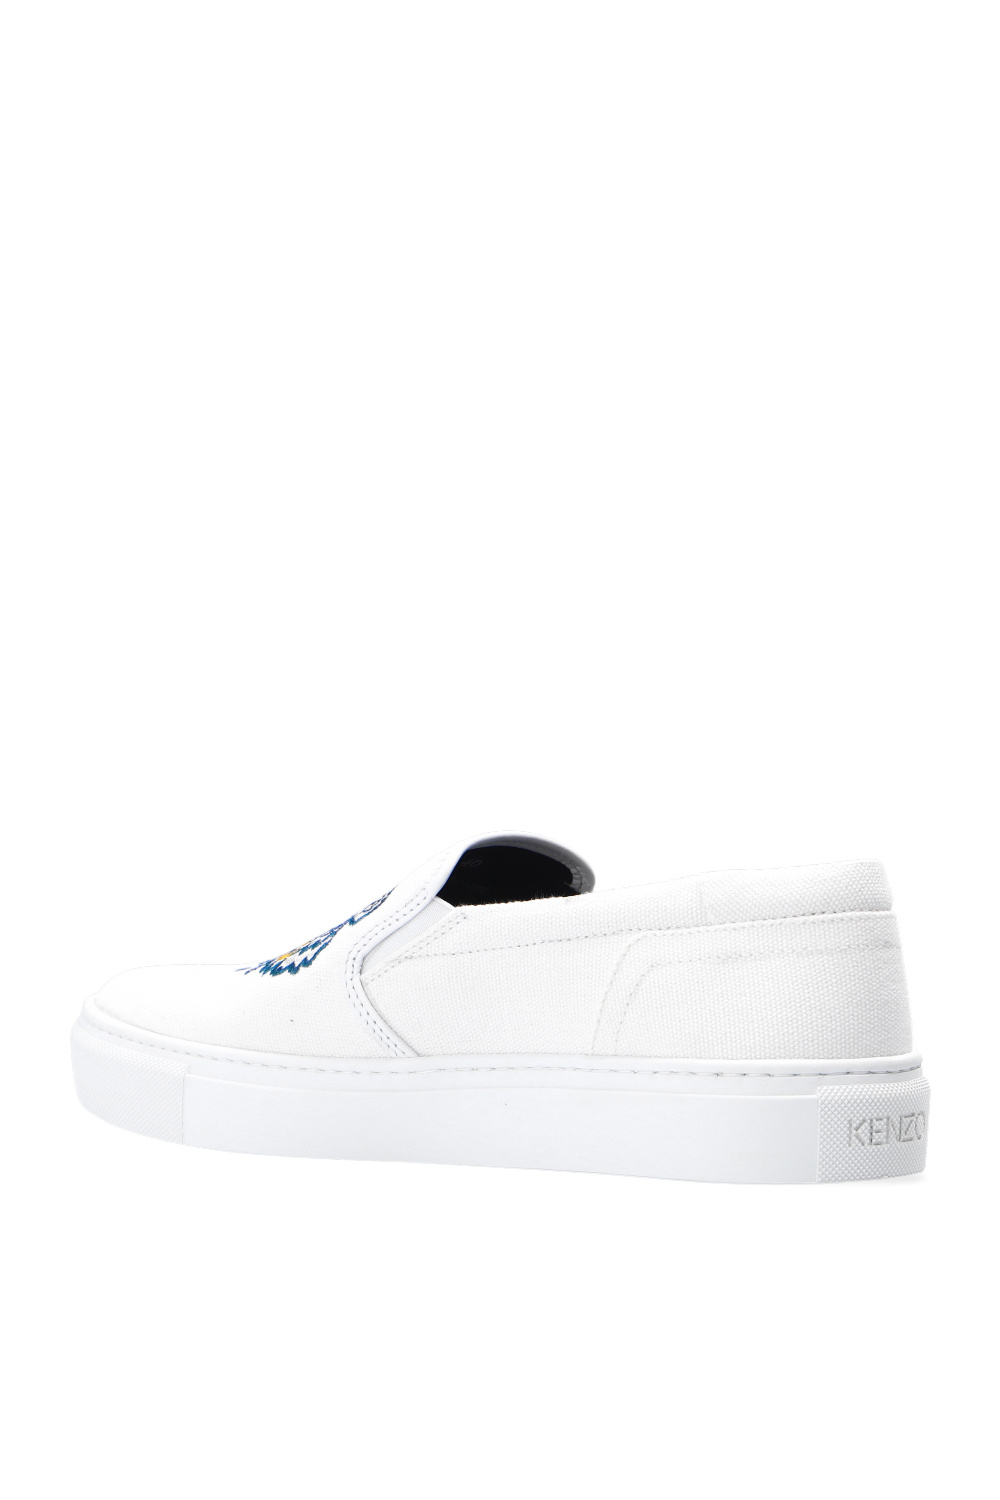 Kenzo Sneakers with logo